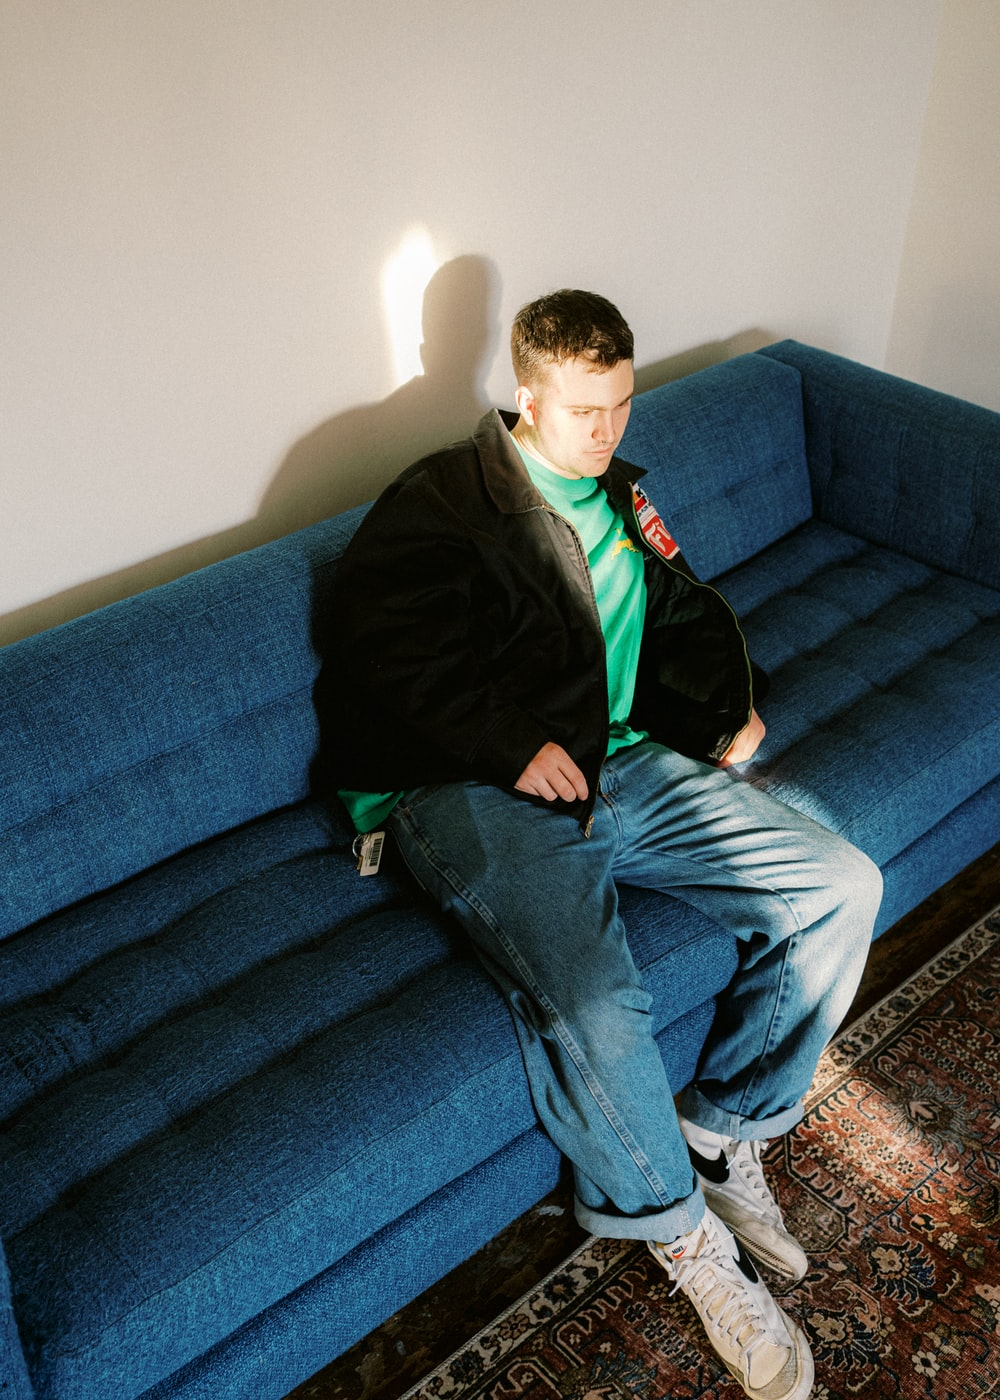 man in black jacket and blue denim jeans sitting on blue couch